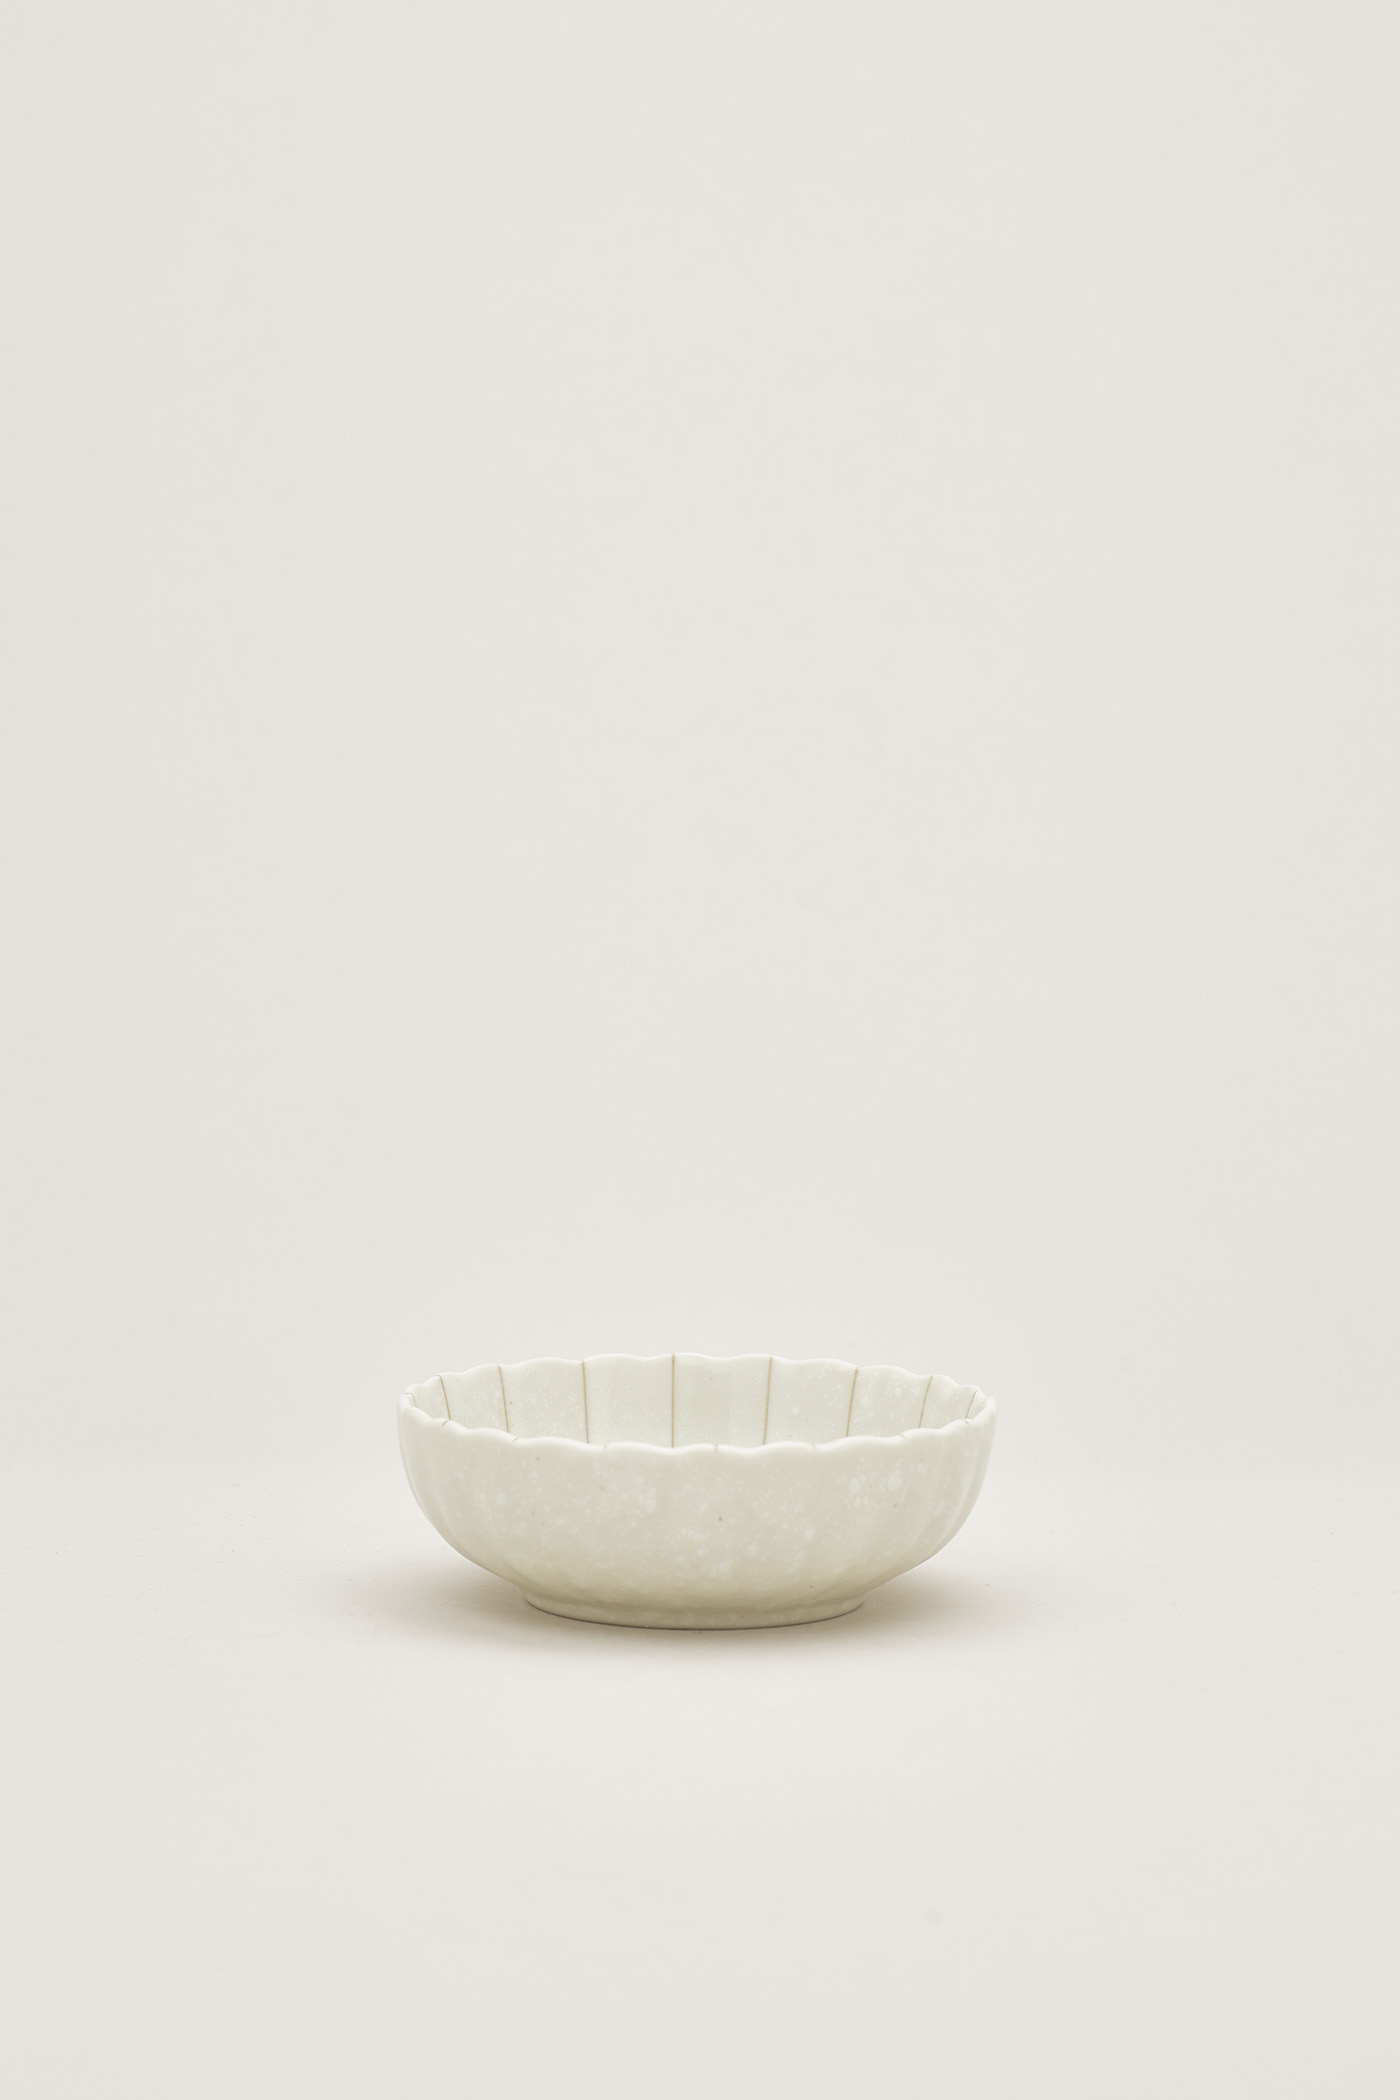 Chizu Small Bowl